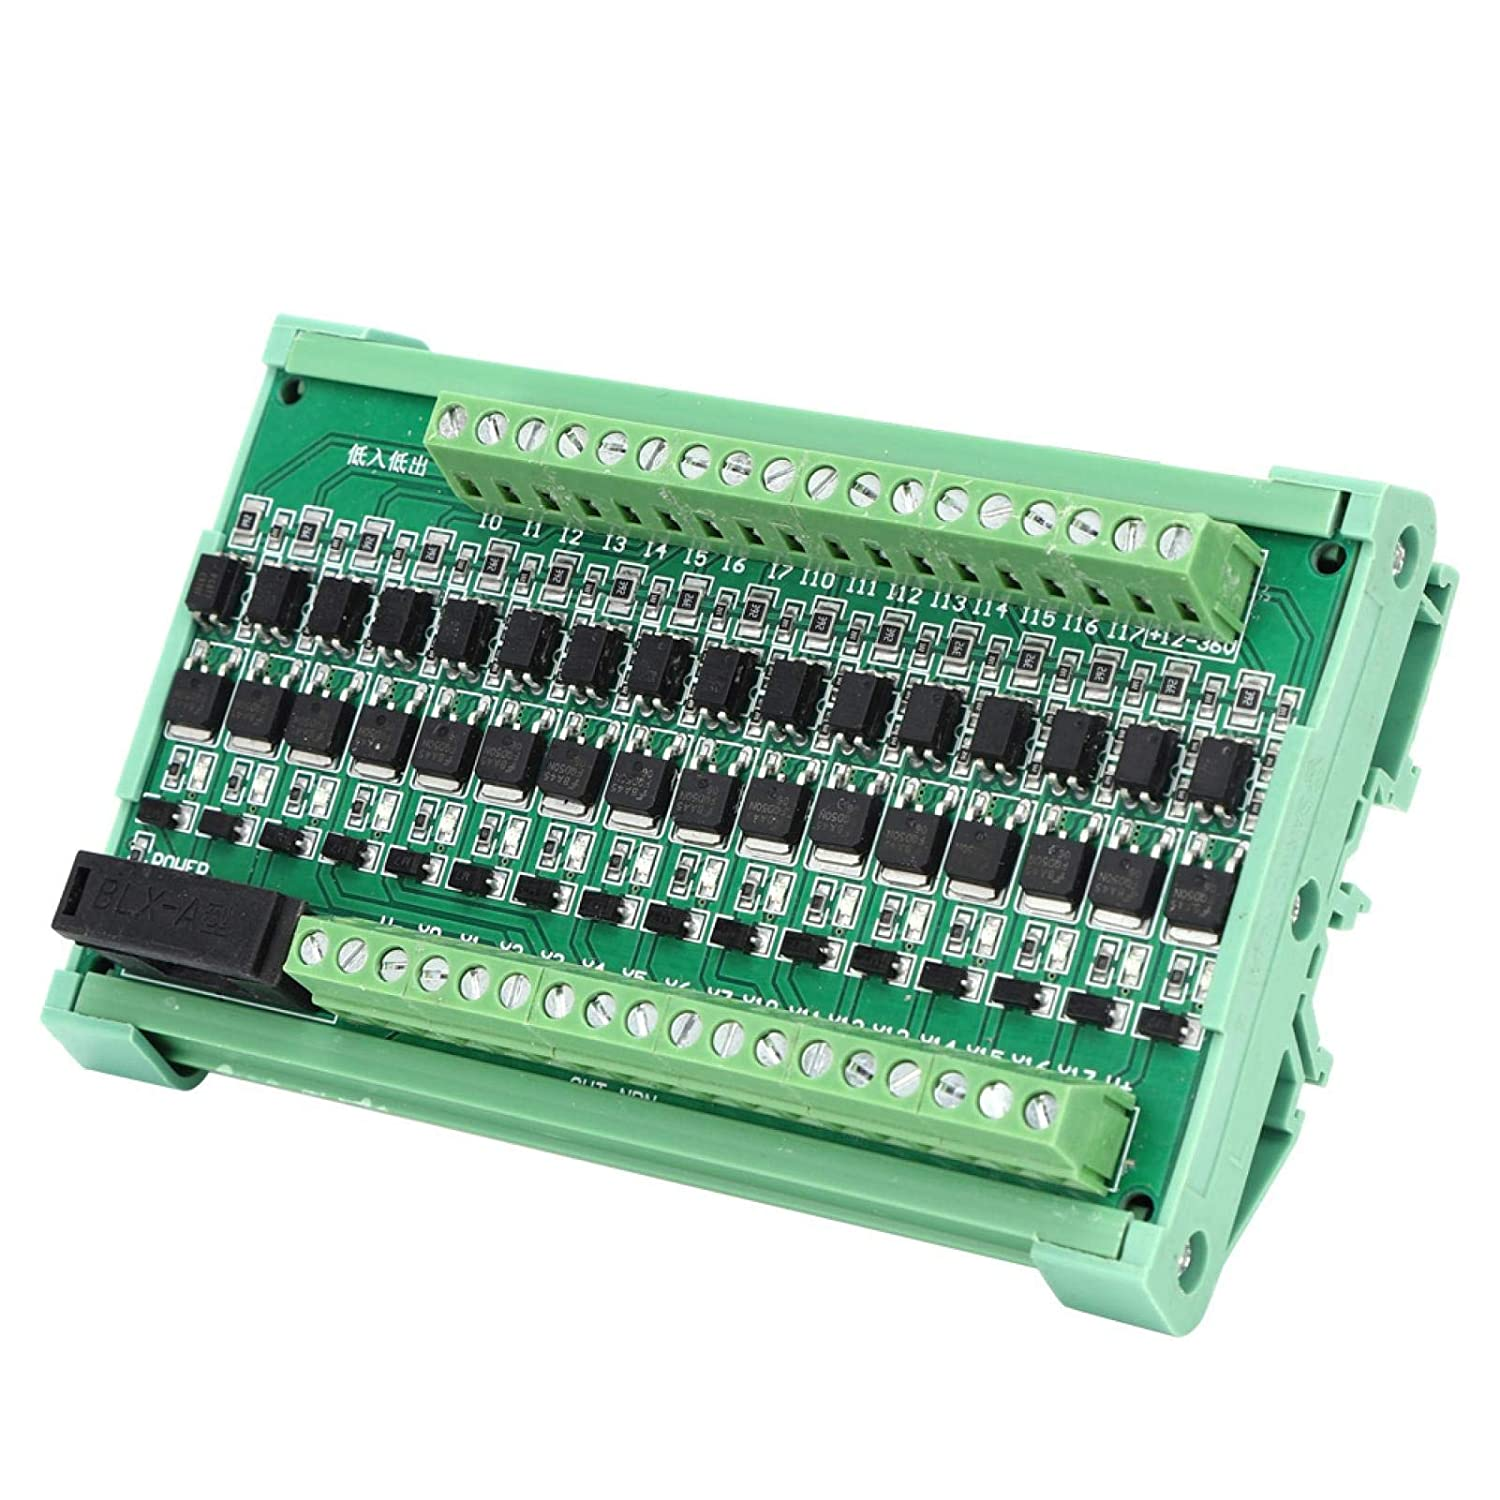 Direct stock discount July SEAL limited product Summer Gifts 16 Channel Portable Pract PLC Isolation Board